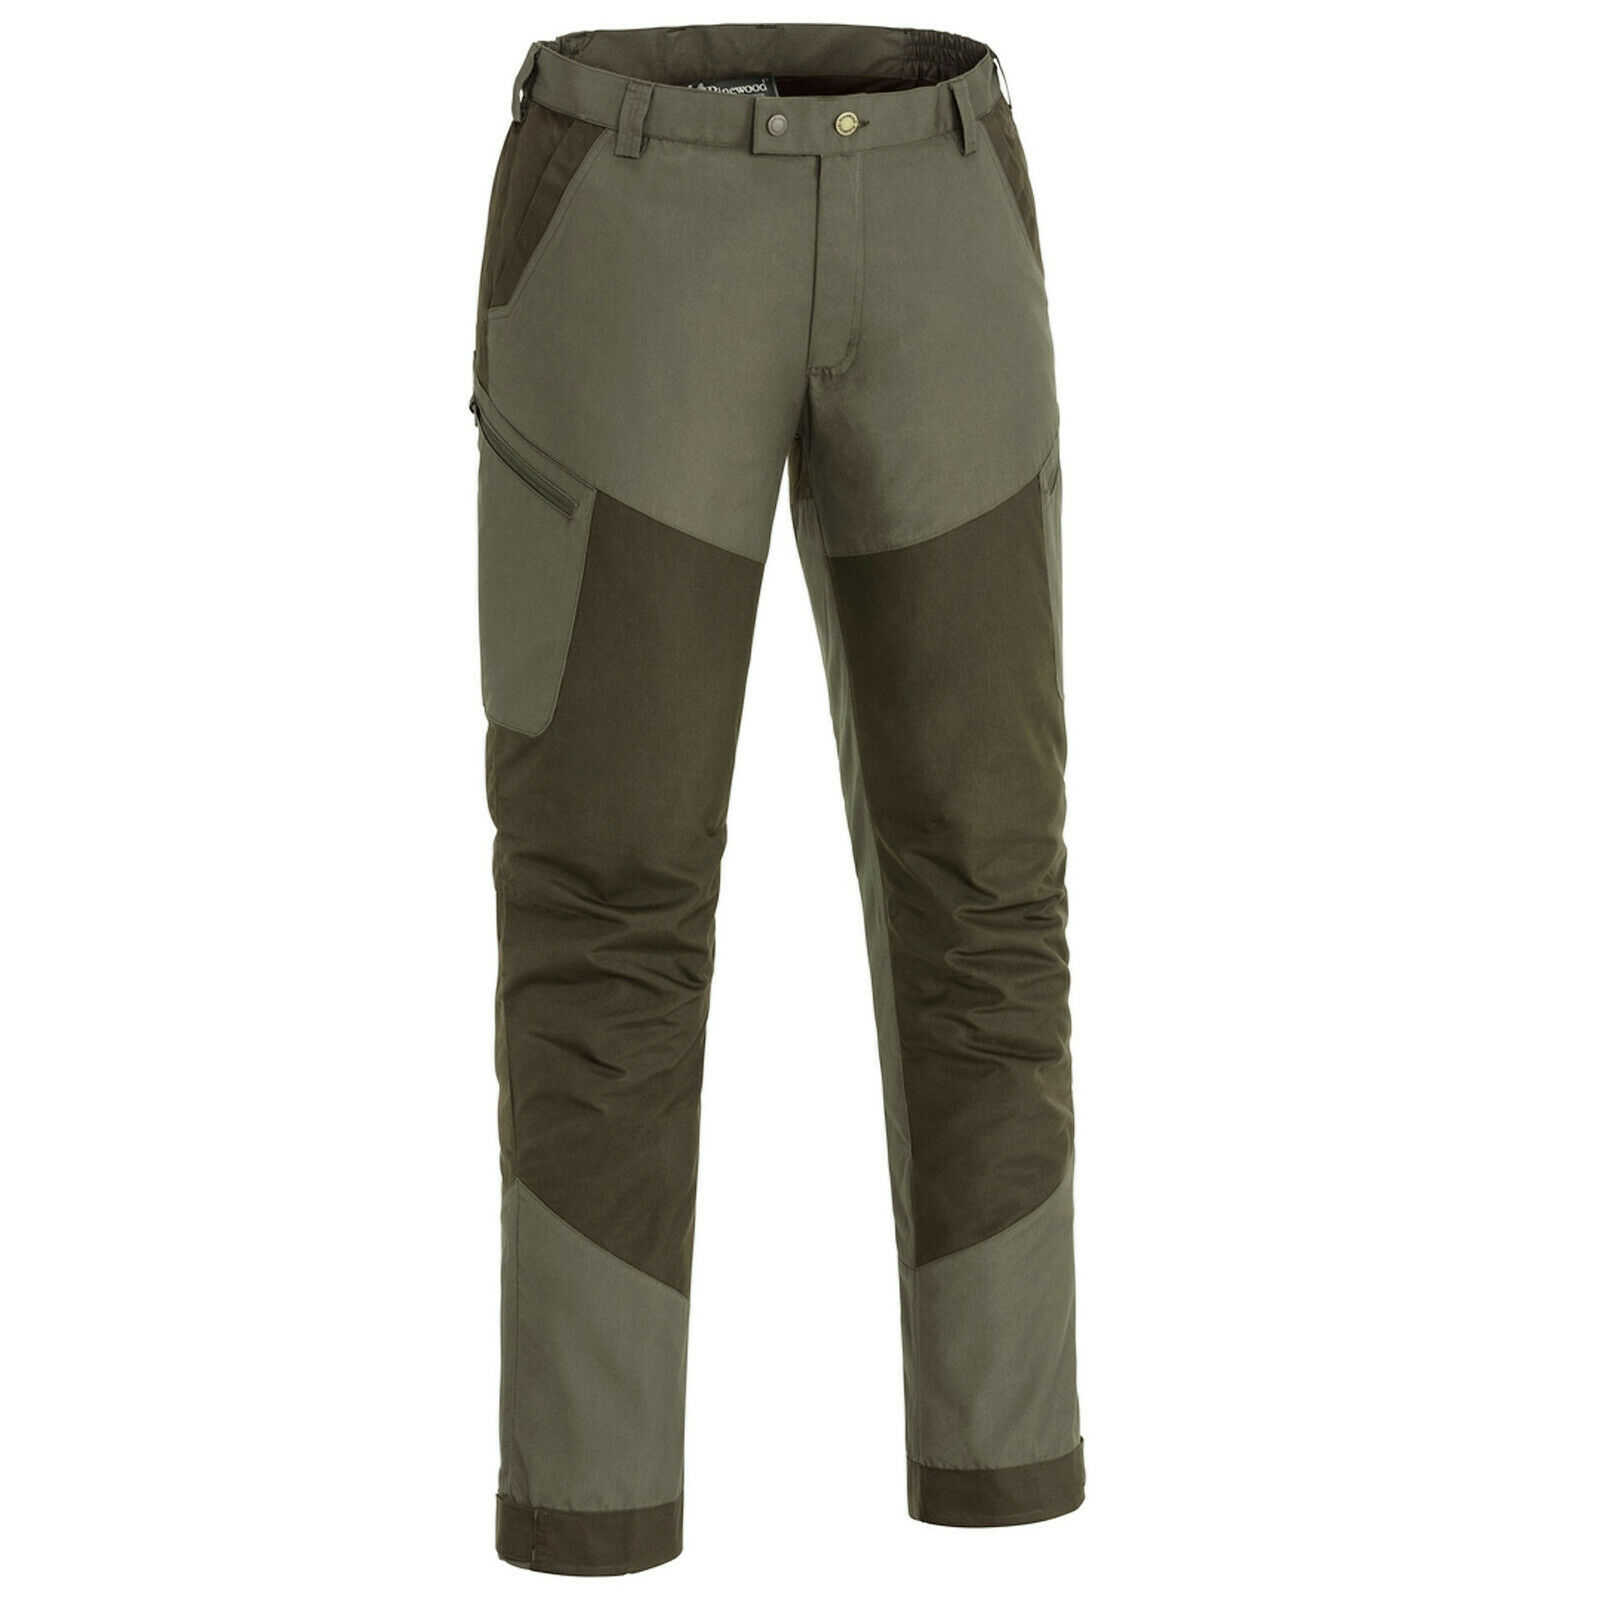 Pinewood 5097 Tiveden TC TC TC Stretch Outdoor & Freizeit Hose - Angelhose Outdoorhose fdd2f8